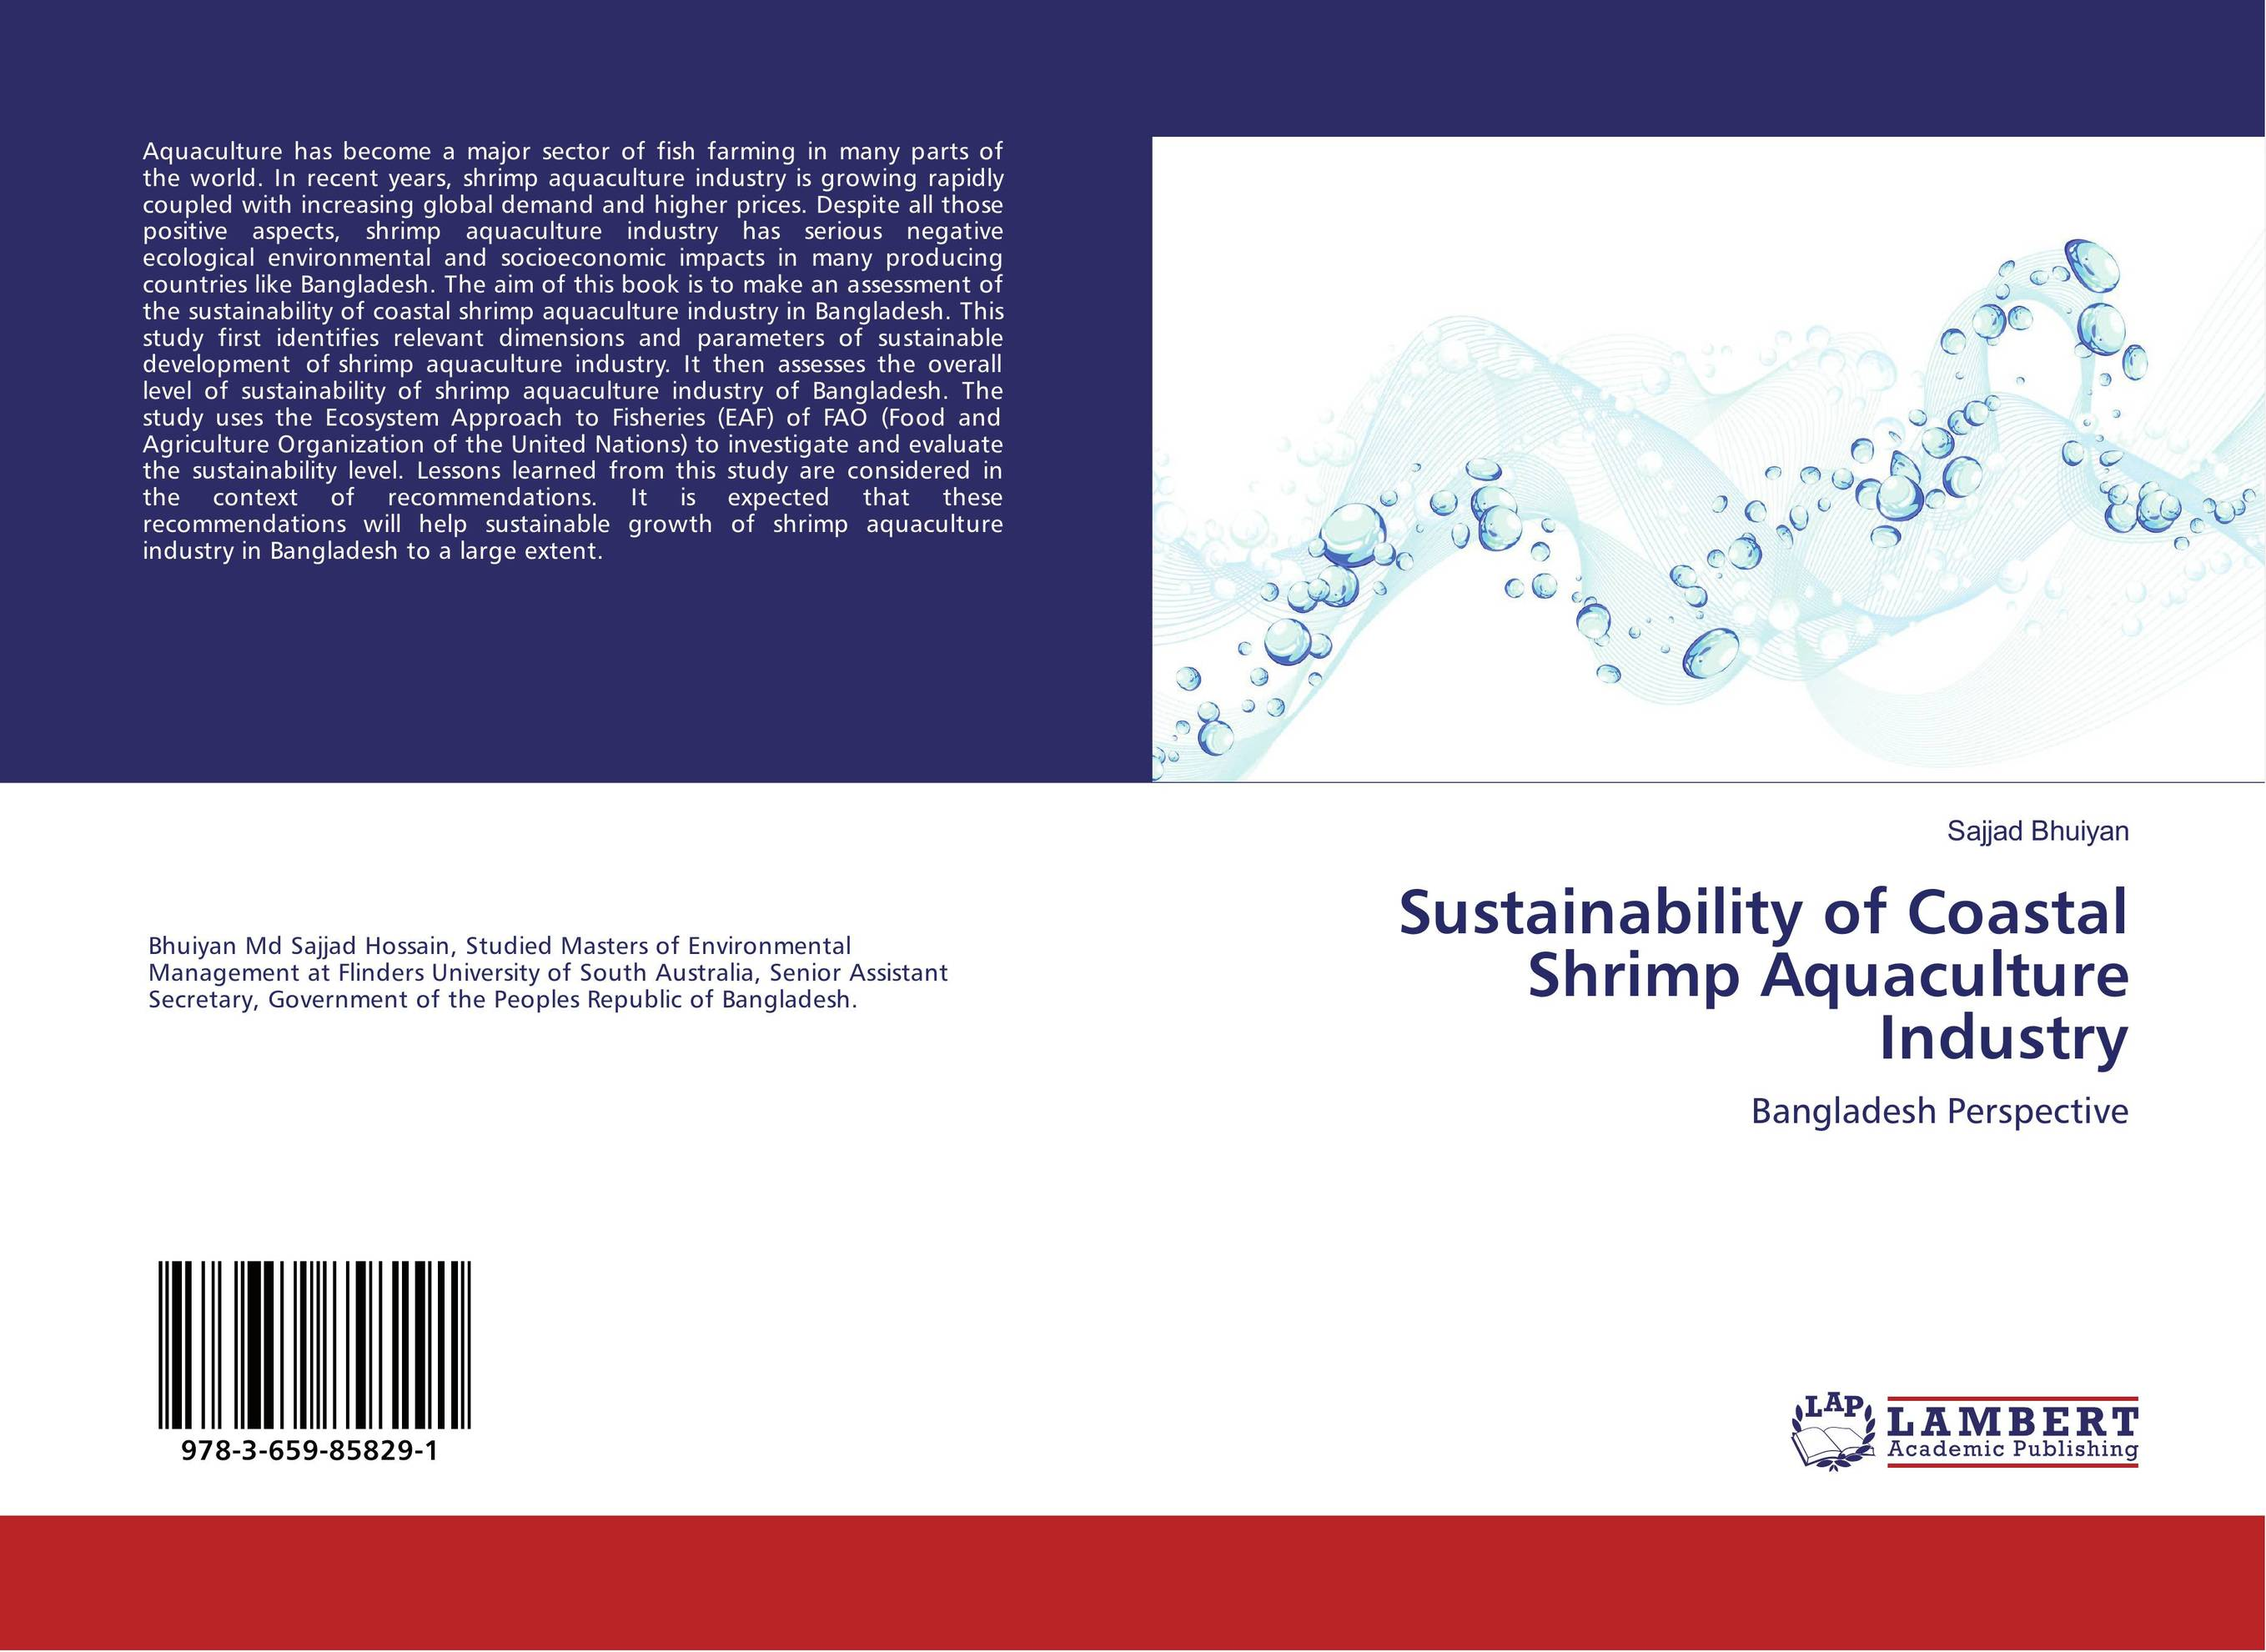 Sustainability of Coastal Shrimp Aquaculture Industry cheryl baldwin j the 10 principles of food industry sustainability